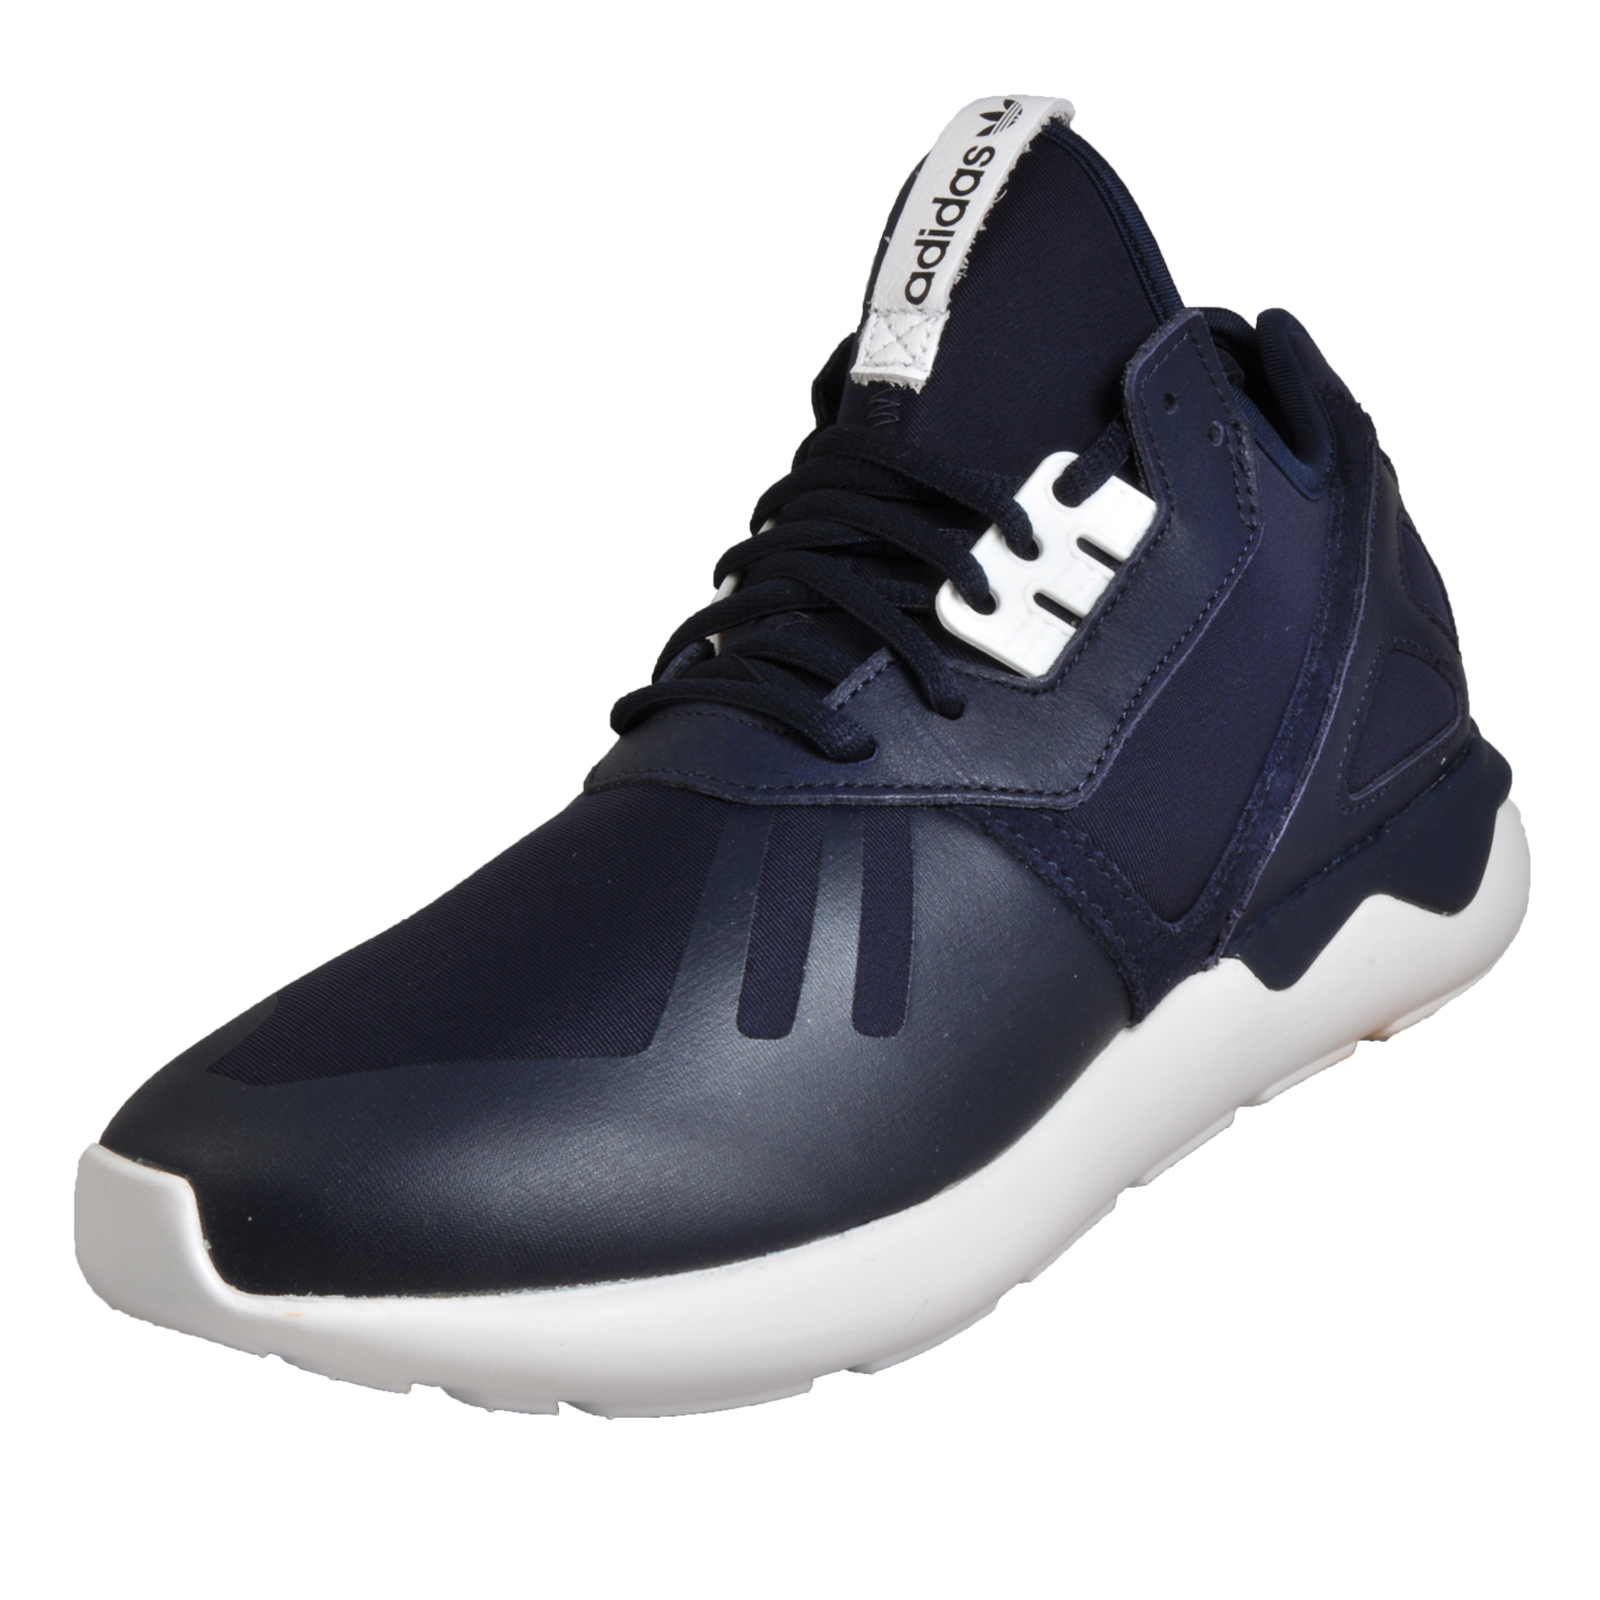 48ae0b3b830b Details about Adidas Originals Tubular Runner Men s Casual Retro Vintage  Trainers Navy